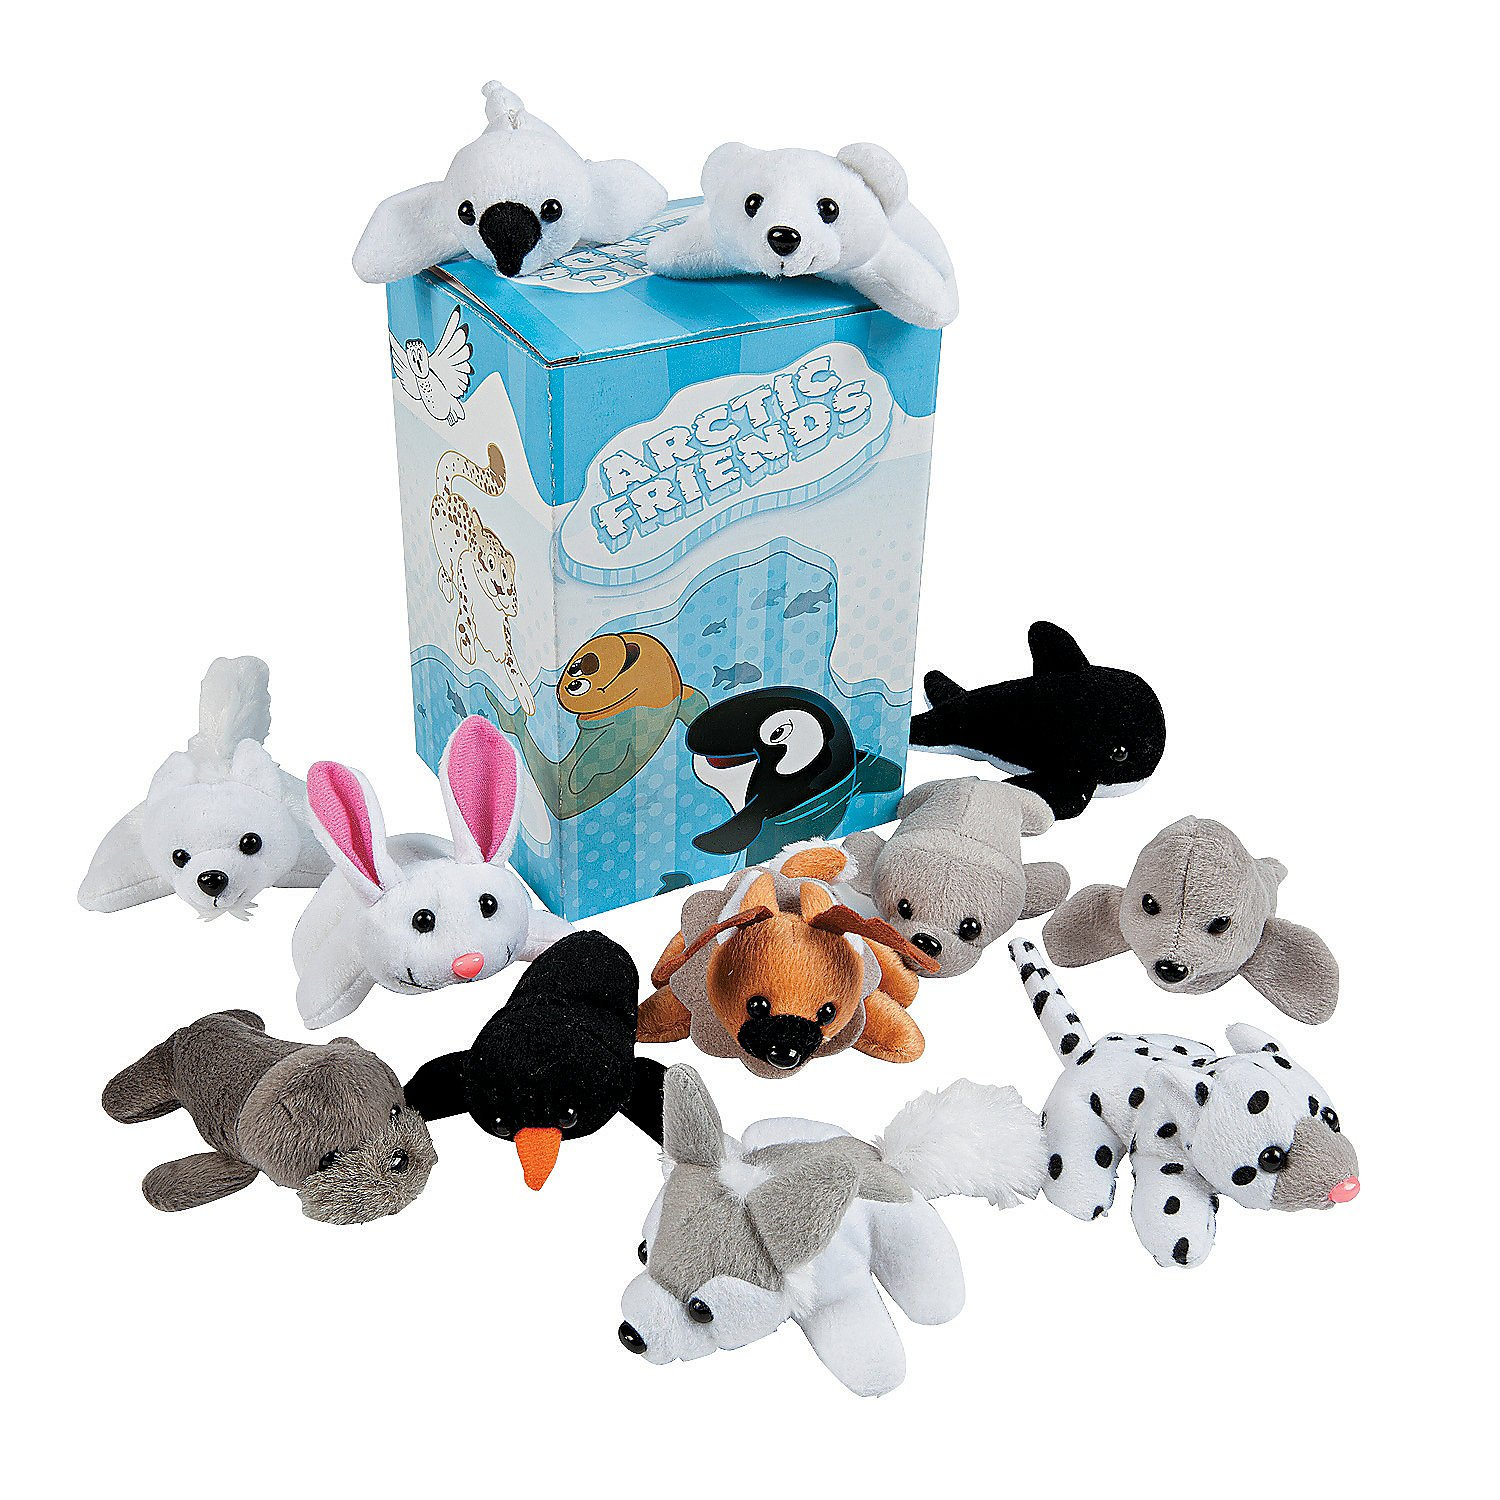 Fun Express - Mini Plush Arctic Assortment (2dz) - Toys - Plush - Bean Bag Animals - 24 Pieces by Fun Express